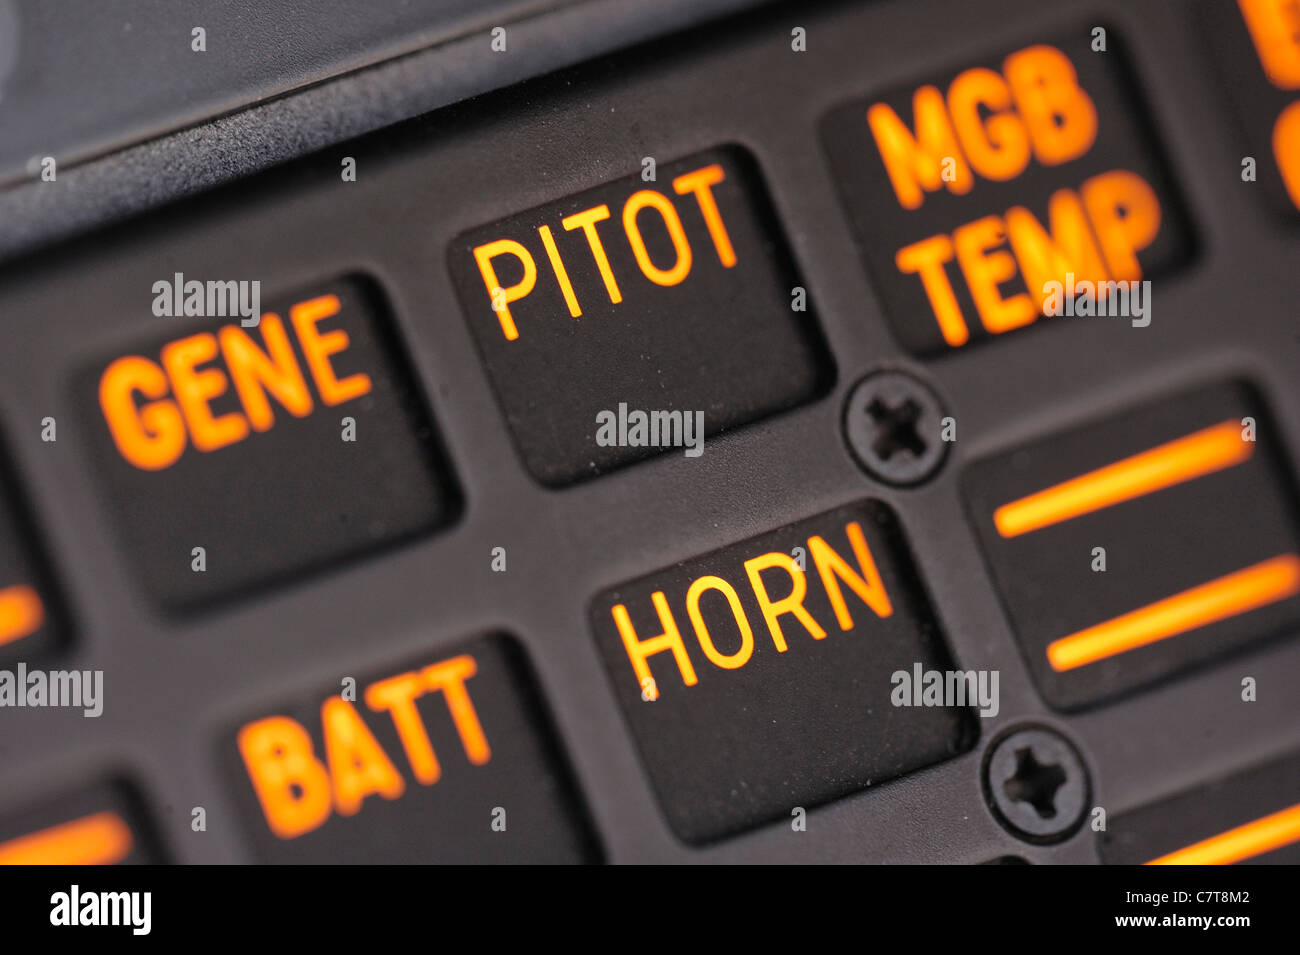 cockpit alarms on helicopter - Stock Image